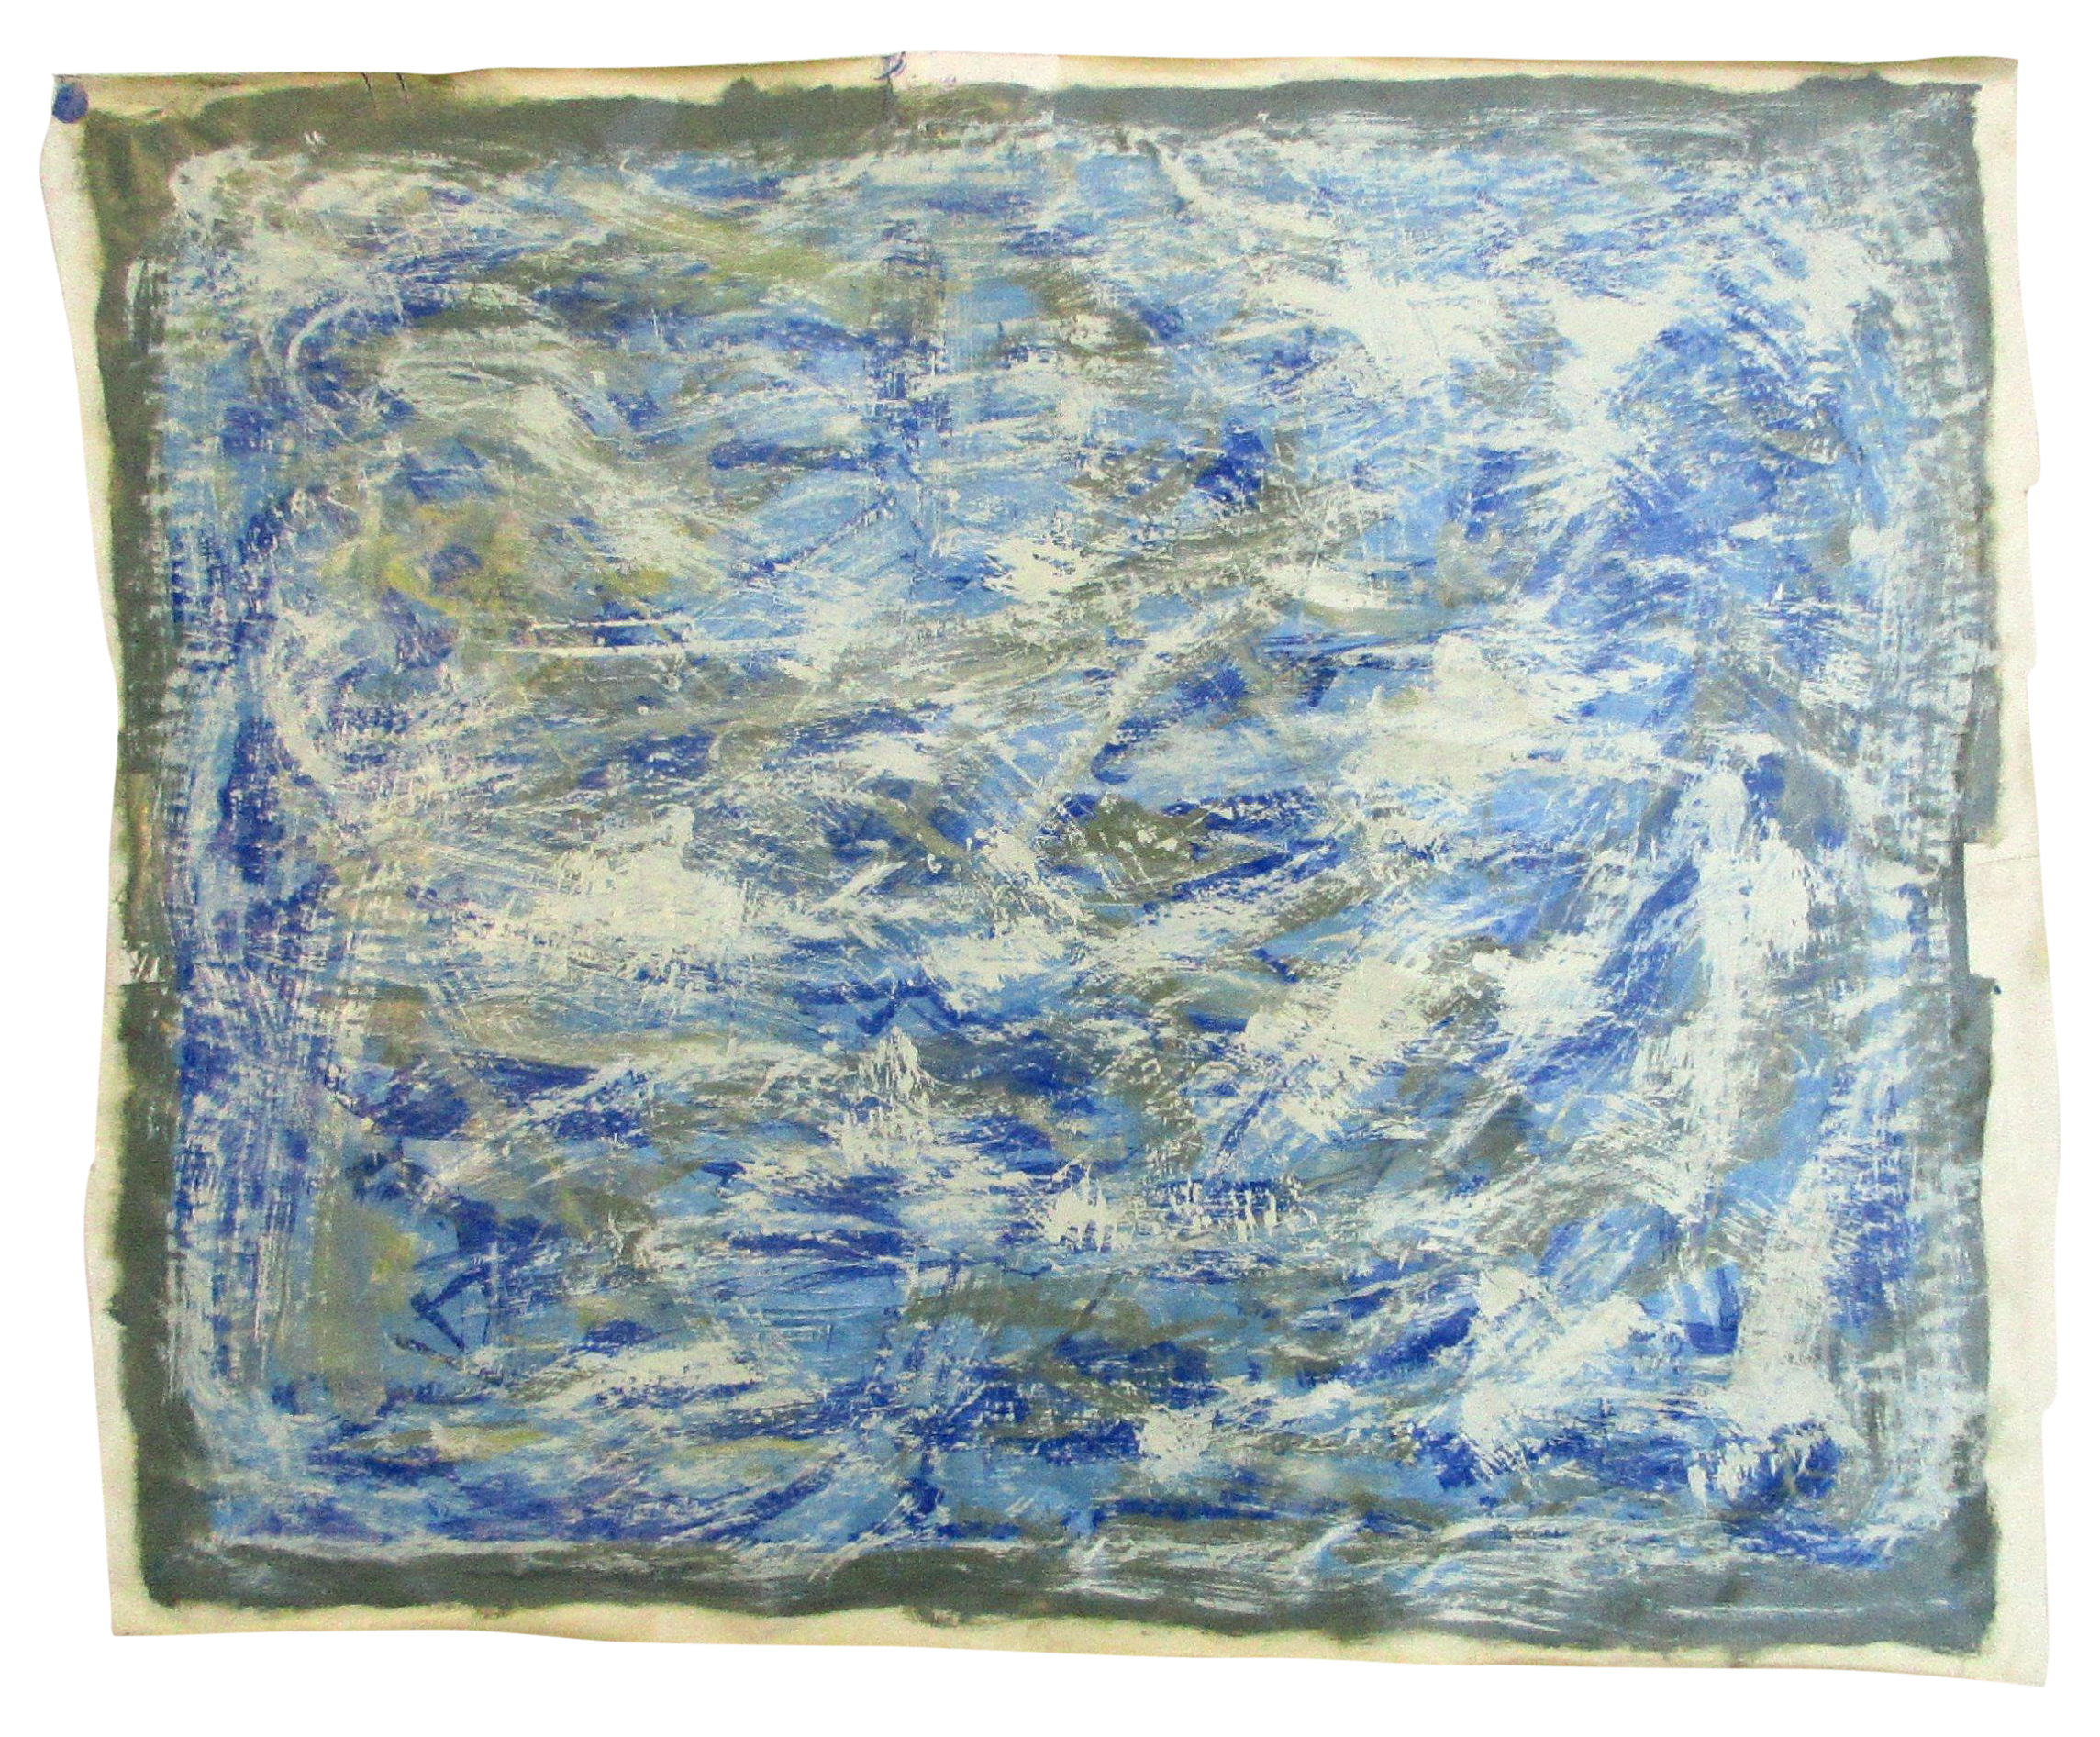 Contemporary Modern Blue Streak Painting By Alaina Painting Paint Shops Oil Painting Abstract